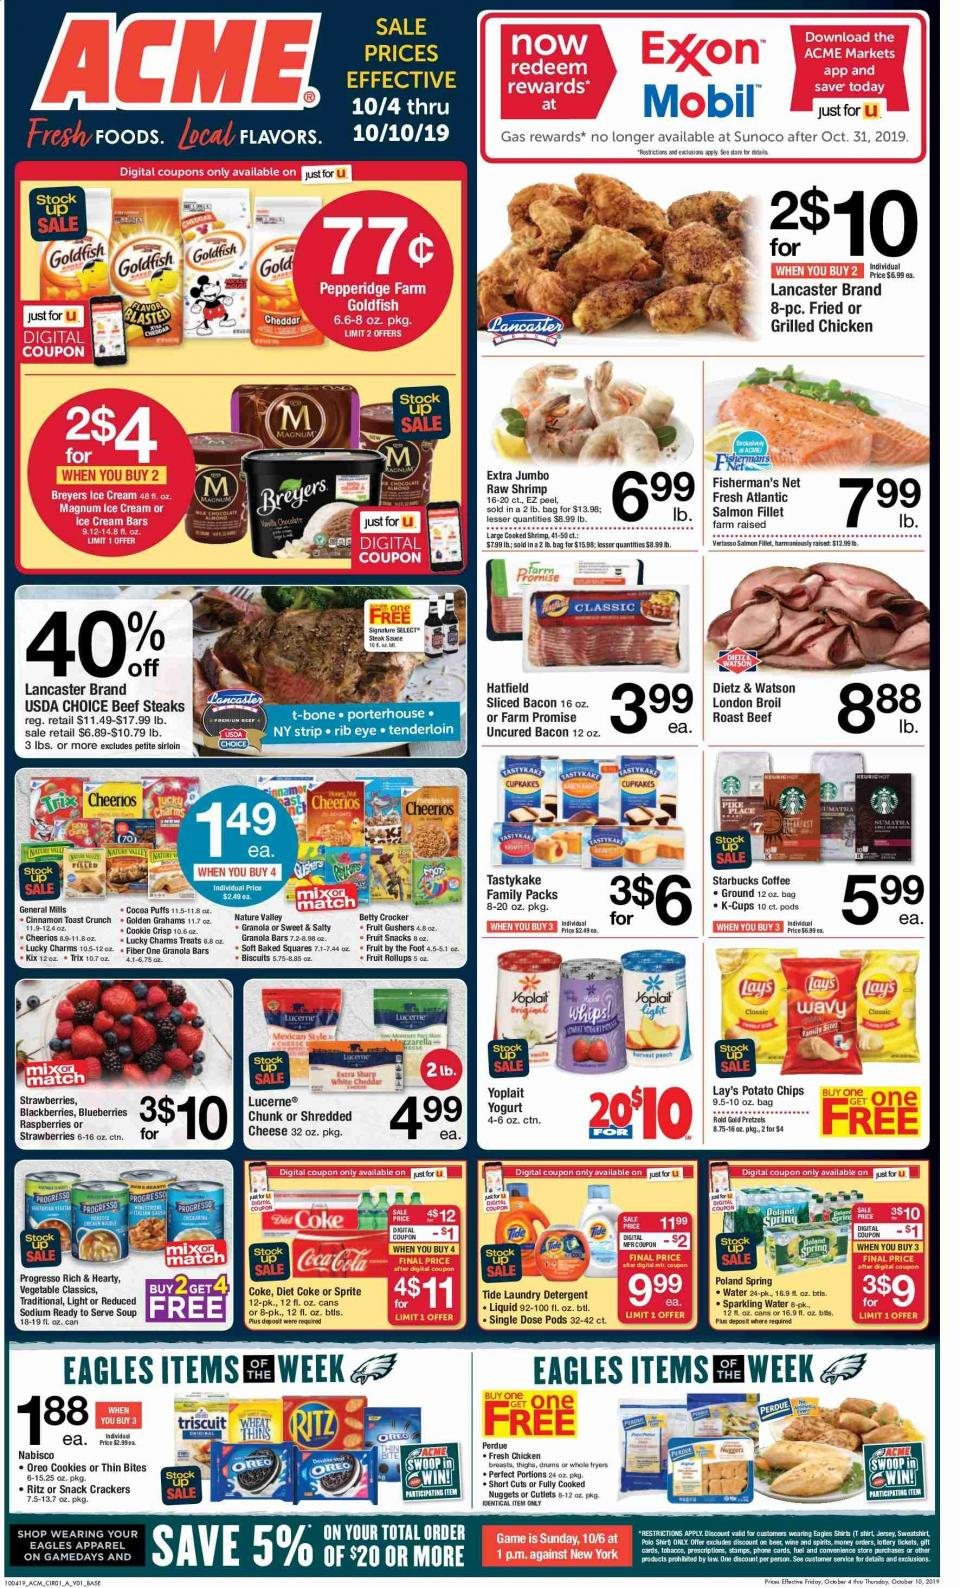 acme weekly ad fresh foods and local flavors from oct 4 to 10 2019